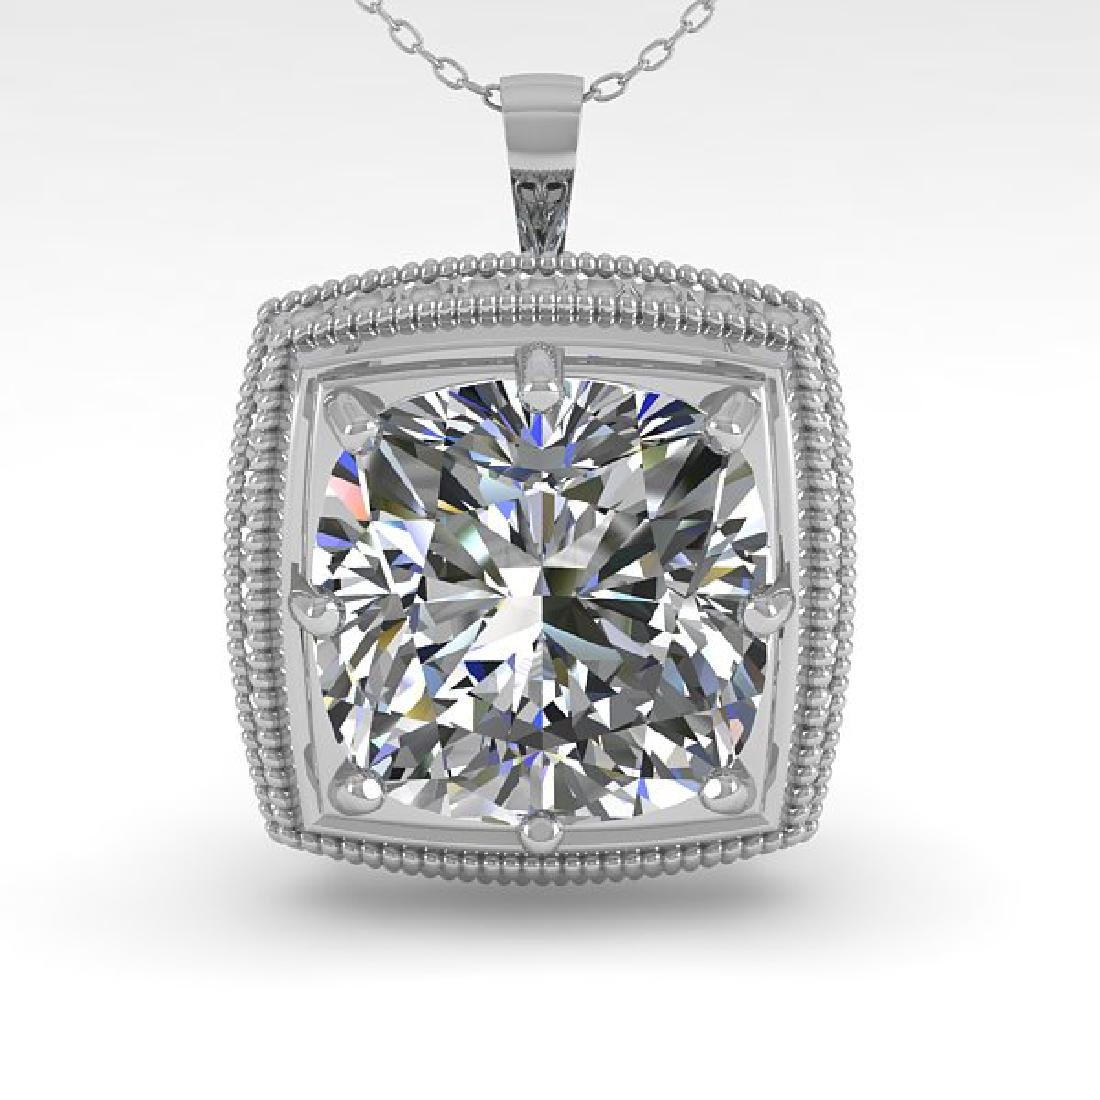 1 CTW VS/SI Cushion Cut Diamond Solitaire Necklace 14K - 2